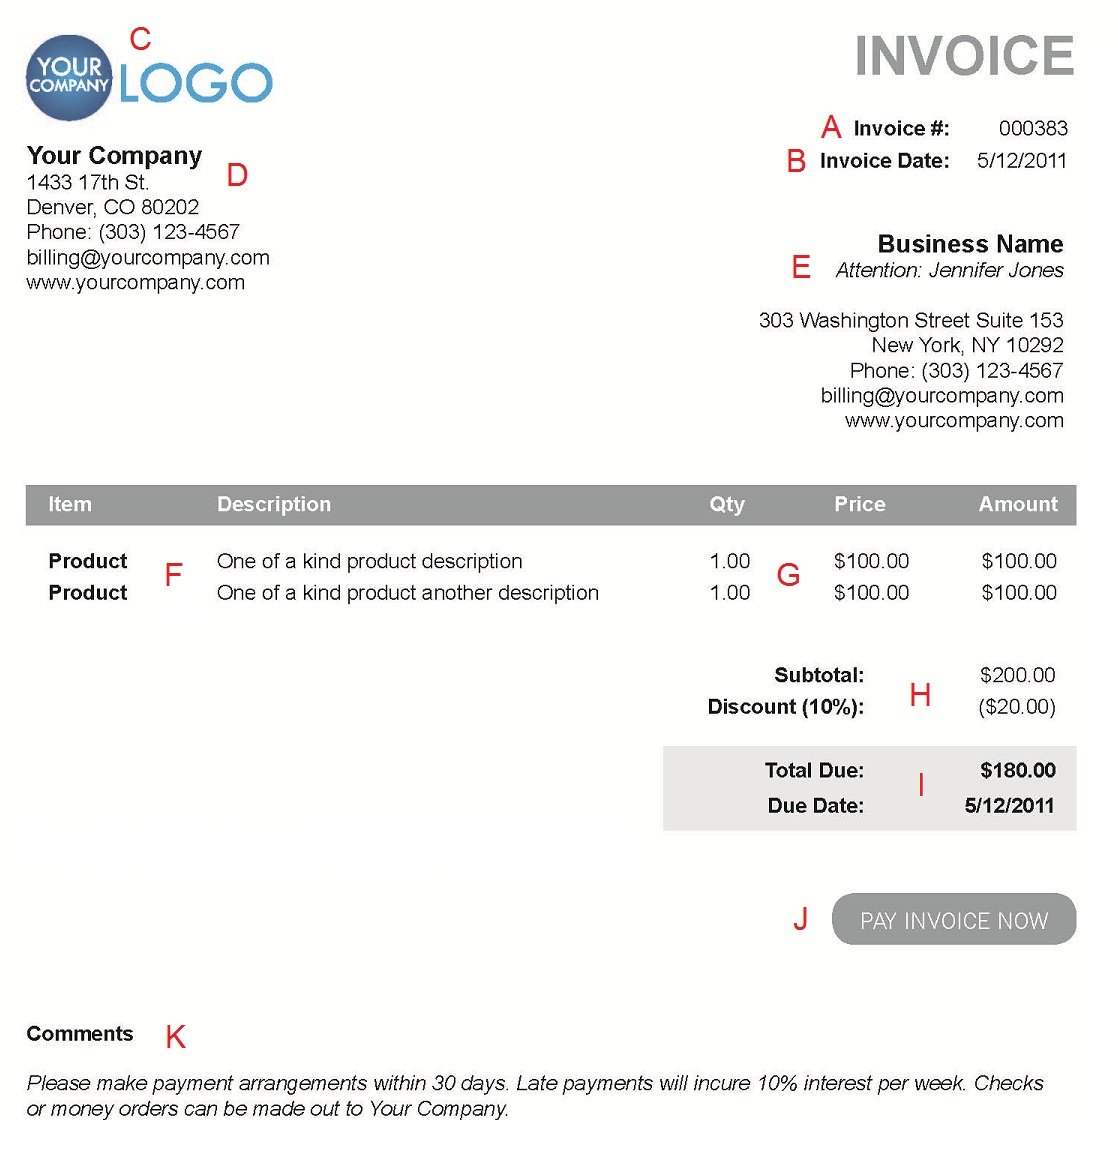 Barneybonesus  Prepossessing The  Different Sections Of An Electronic Payment Invoice With Outstanding A  With Agreeable Commercial Invoice Blank Also Westpac Invoice Finance In Addition Sample Proforma Invoice Excel Template And Invoice Maker Online Free As Well As Myob Invoices Additionally Invoices On Ebay From Paysimplecom With Barneybonesus  Outstanding The  Different Sections Of An Electronic Payment Invoice With Agreeable A  And Prepossessing Commercial Invoice Blank Also Westpac Invoice Finance In Addition Sample Proforma Invoice Excel Template From Paysimplecom